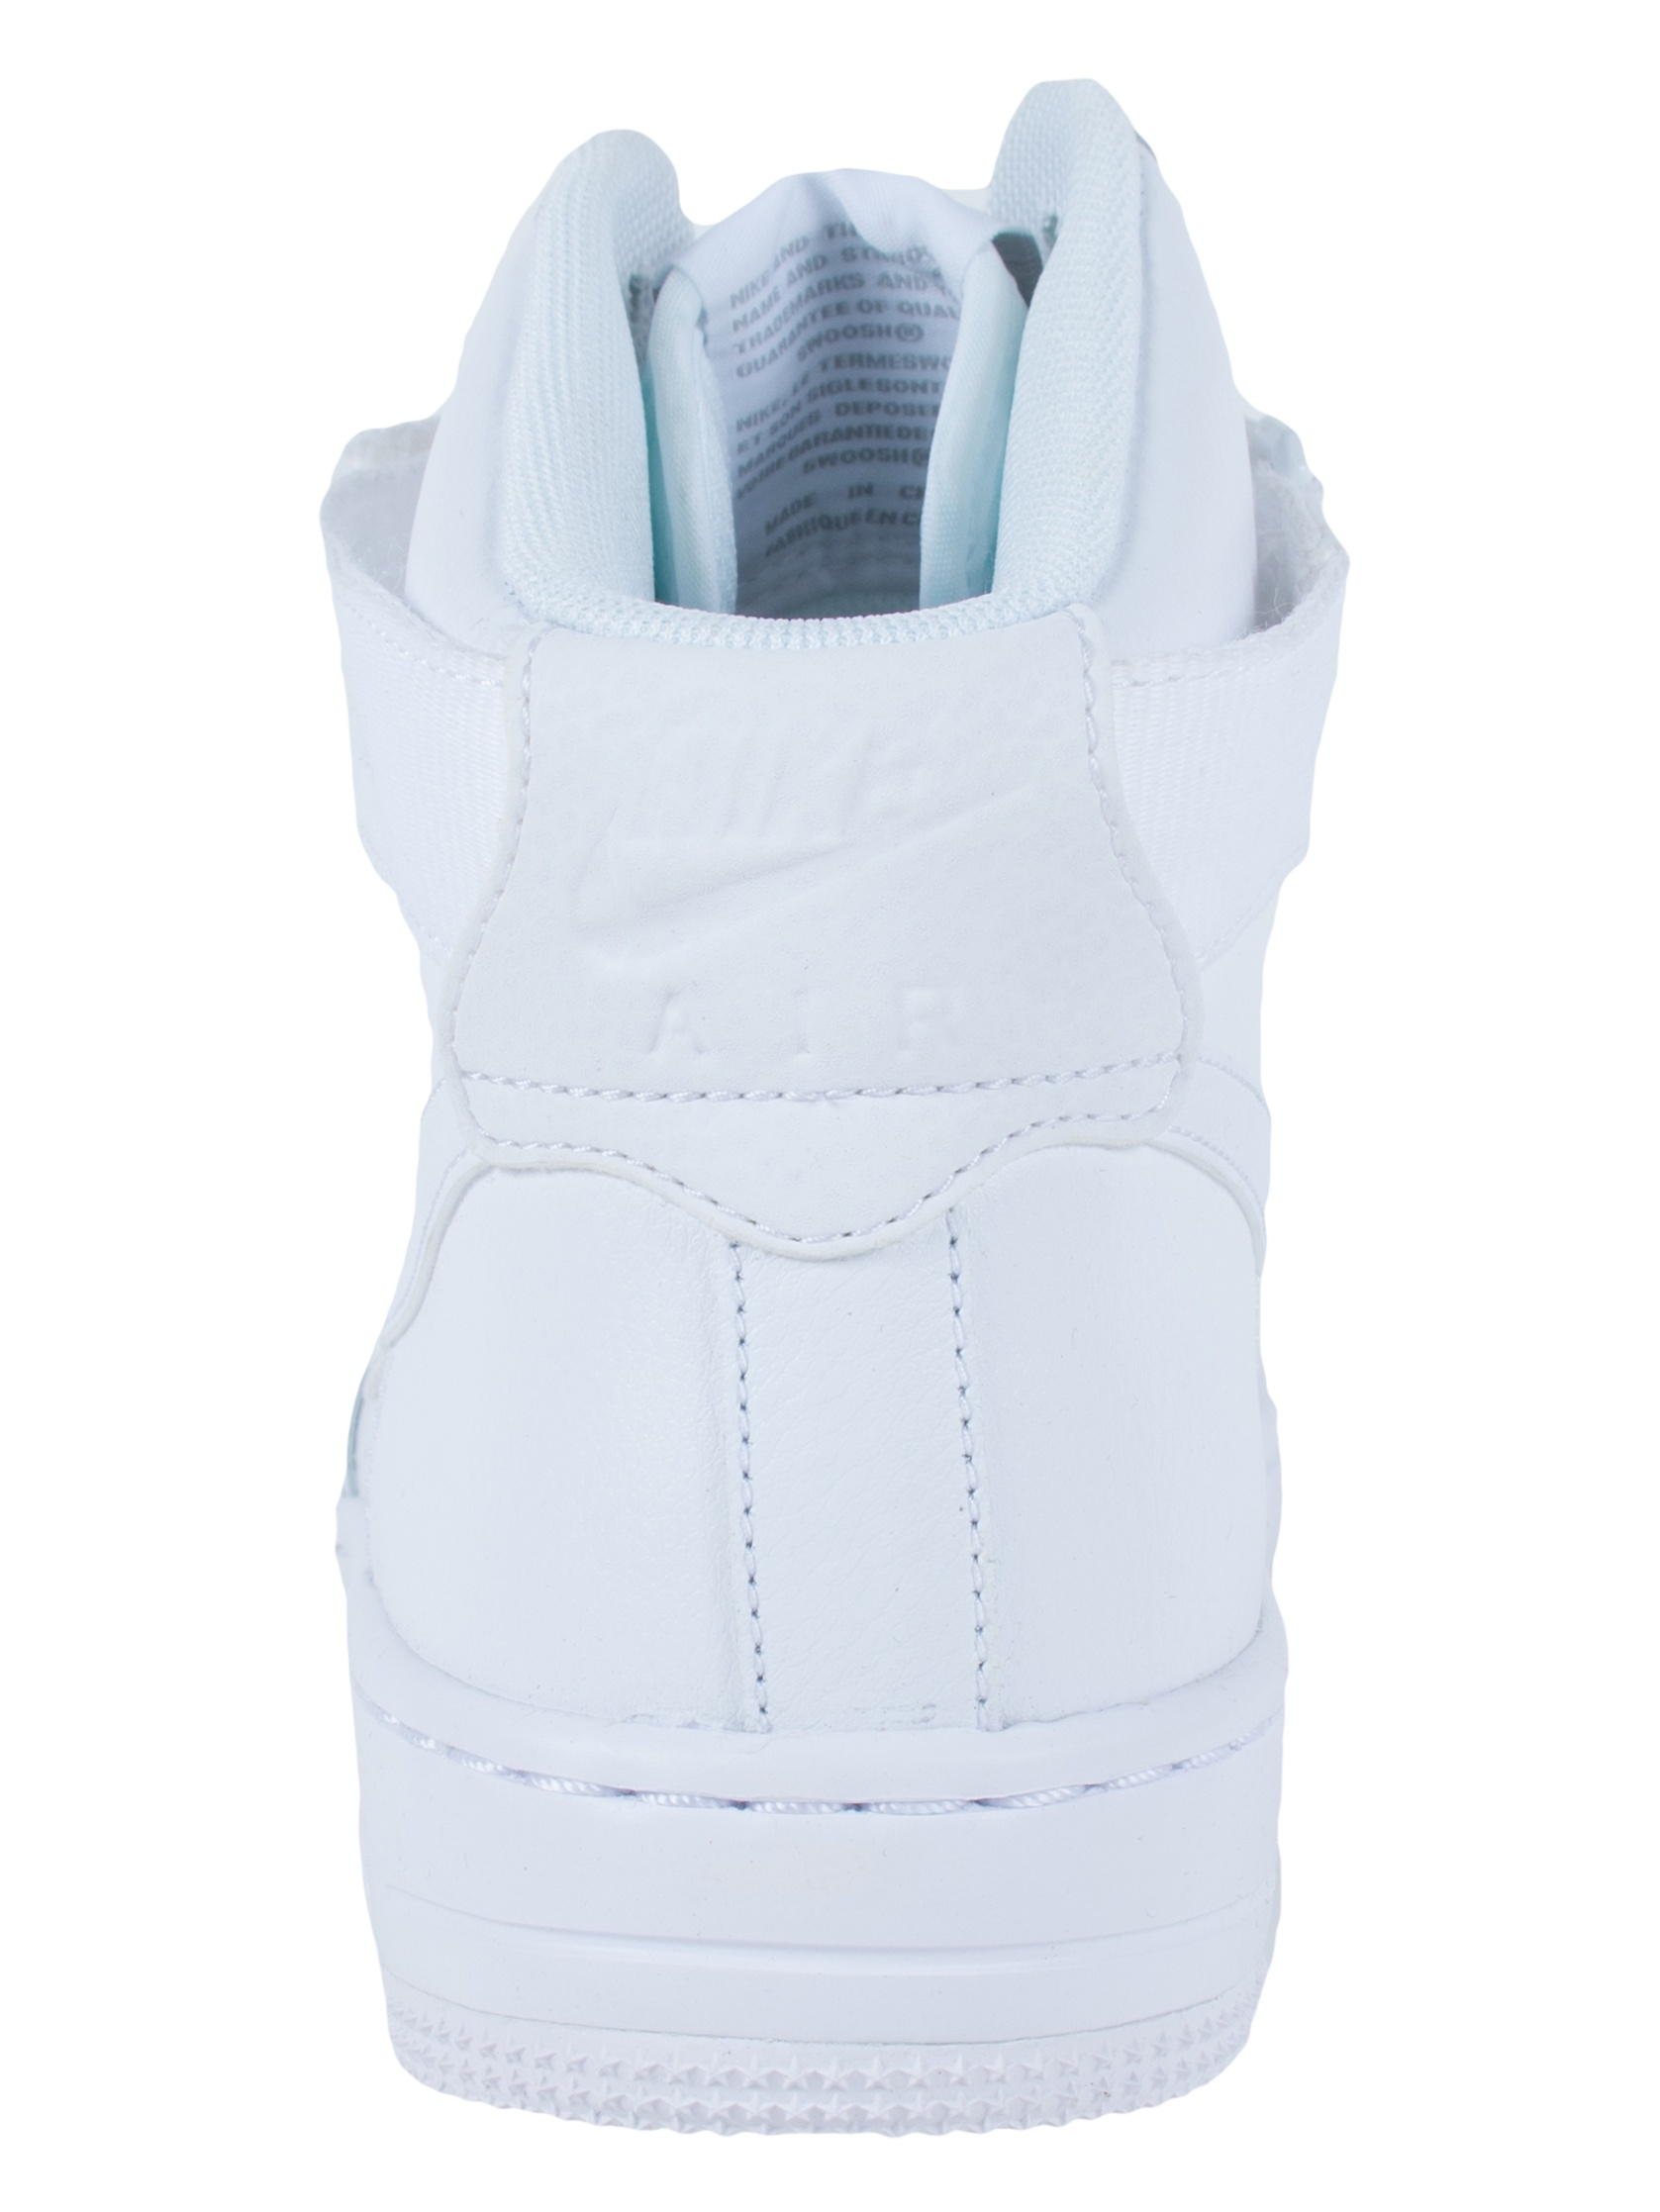 NIKE WOMENS AF1 ULTRA FORCE MID ESS SNEAKERS 749535 WHITE WHITE WOLF GREY 749535 SNEAKERS 100 41d7ac